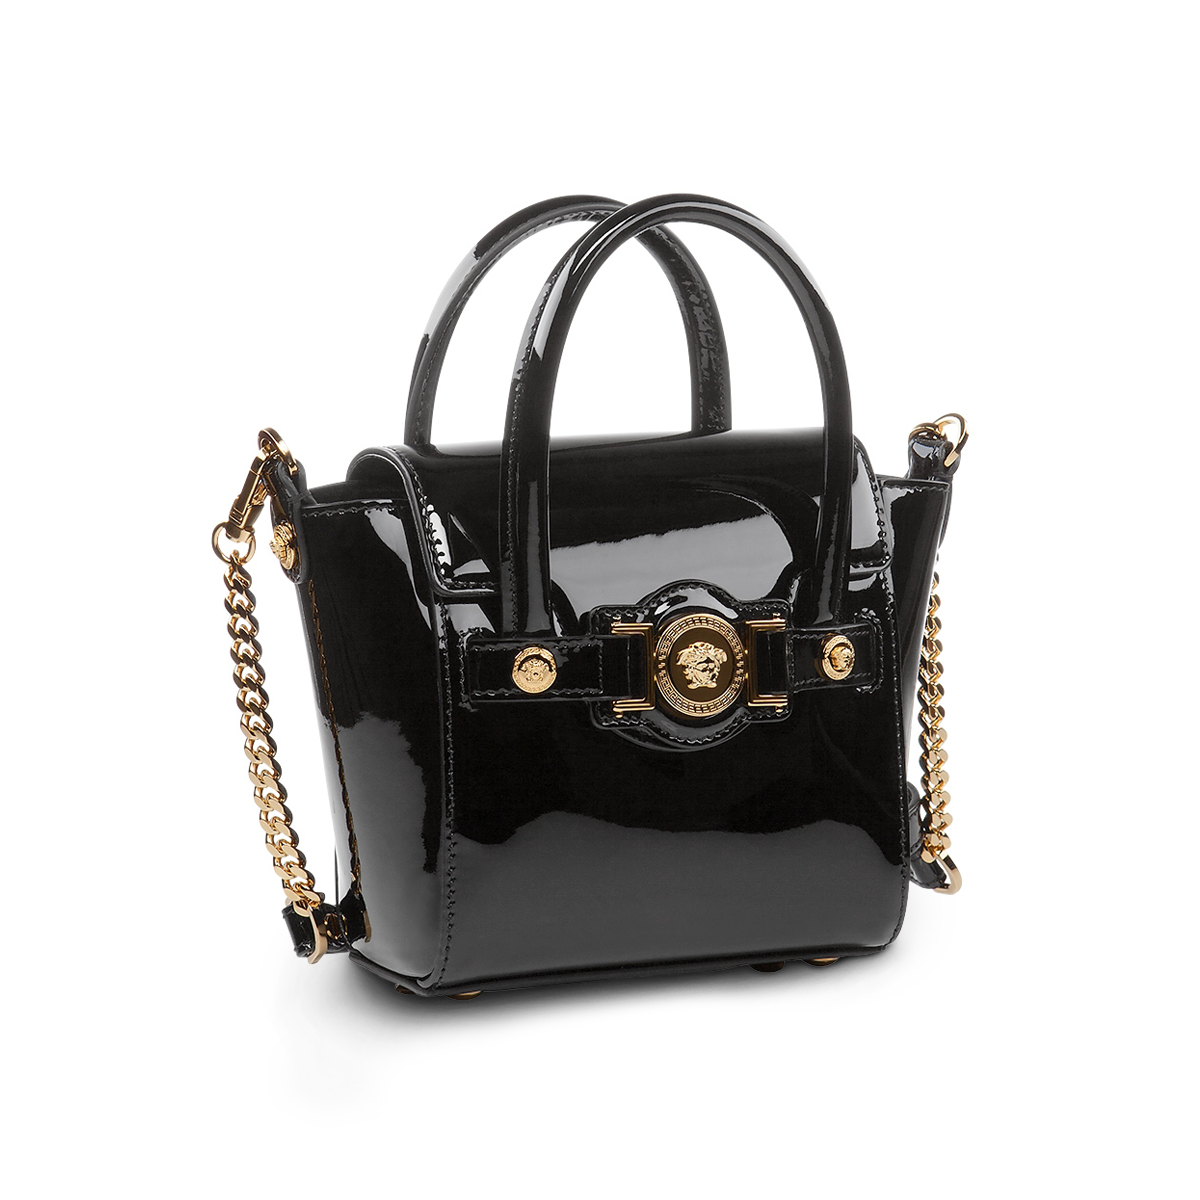 62258a533f4c Style indulgence -  Versace Mini Signature bag in patent leather. Find more  on versace.com  VersaceSignatureBag